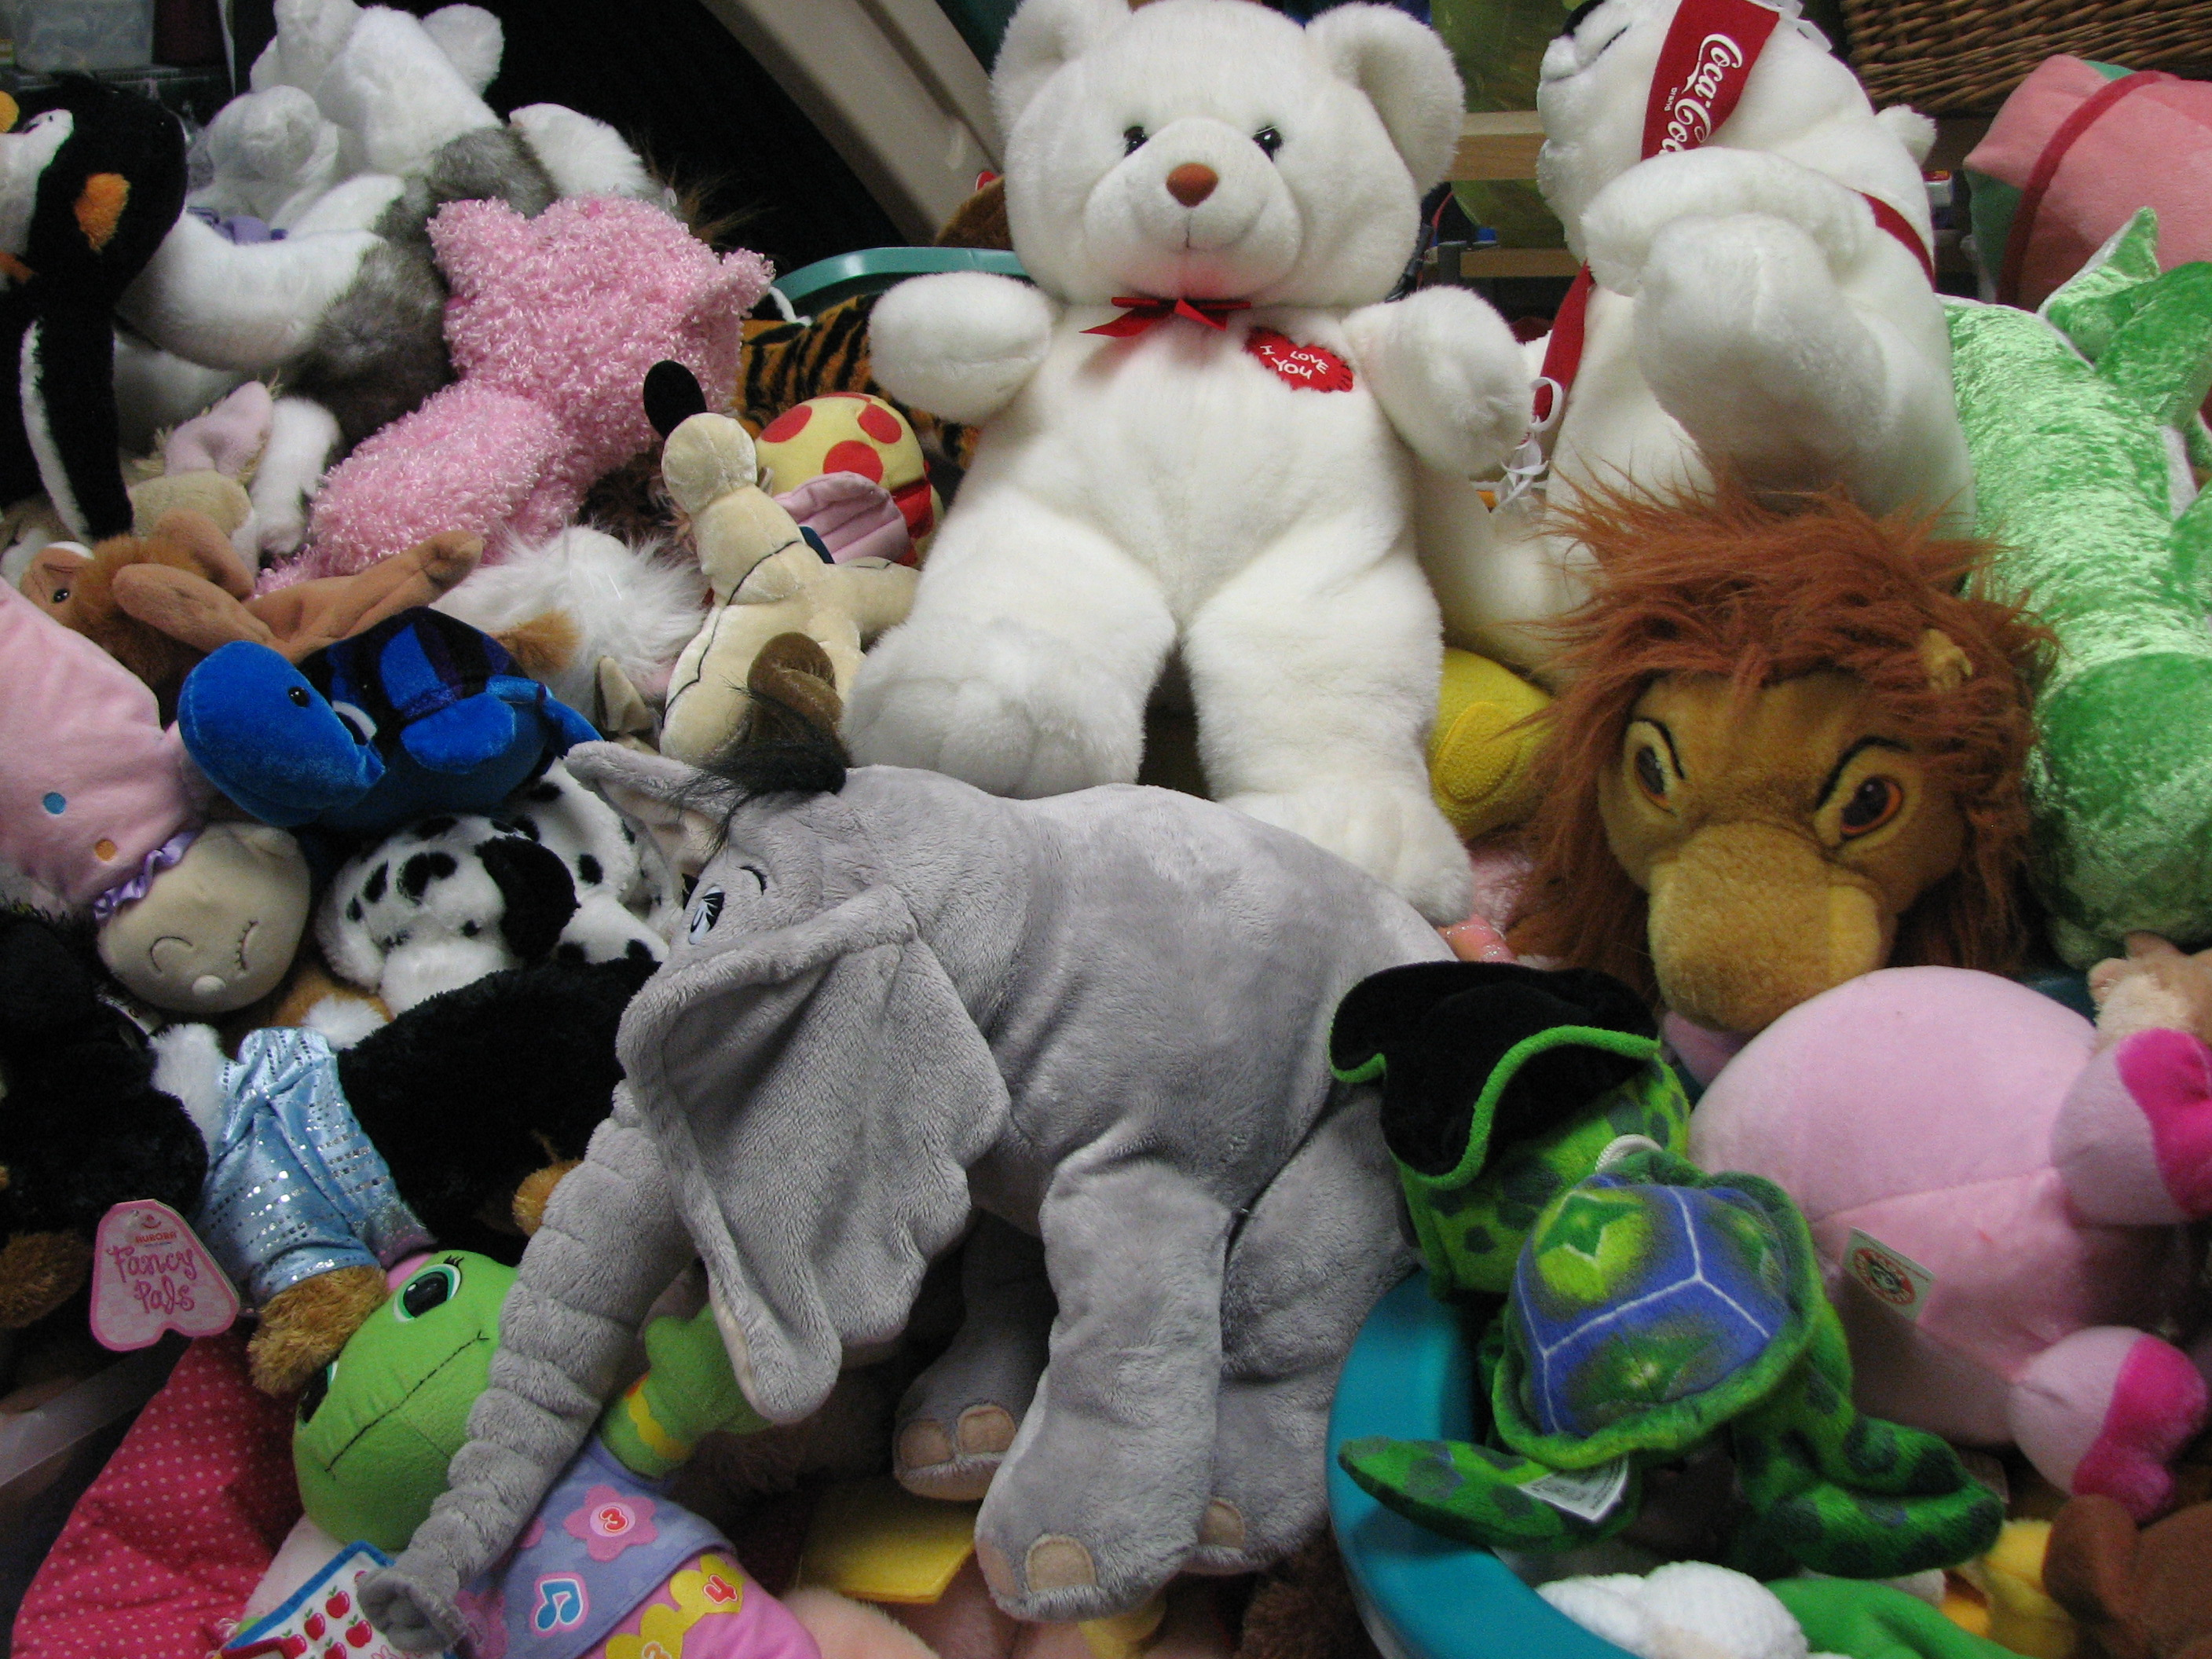 Plush Stuffed Animal Toys : The march of stuffed animals powered by robots